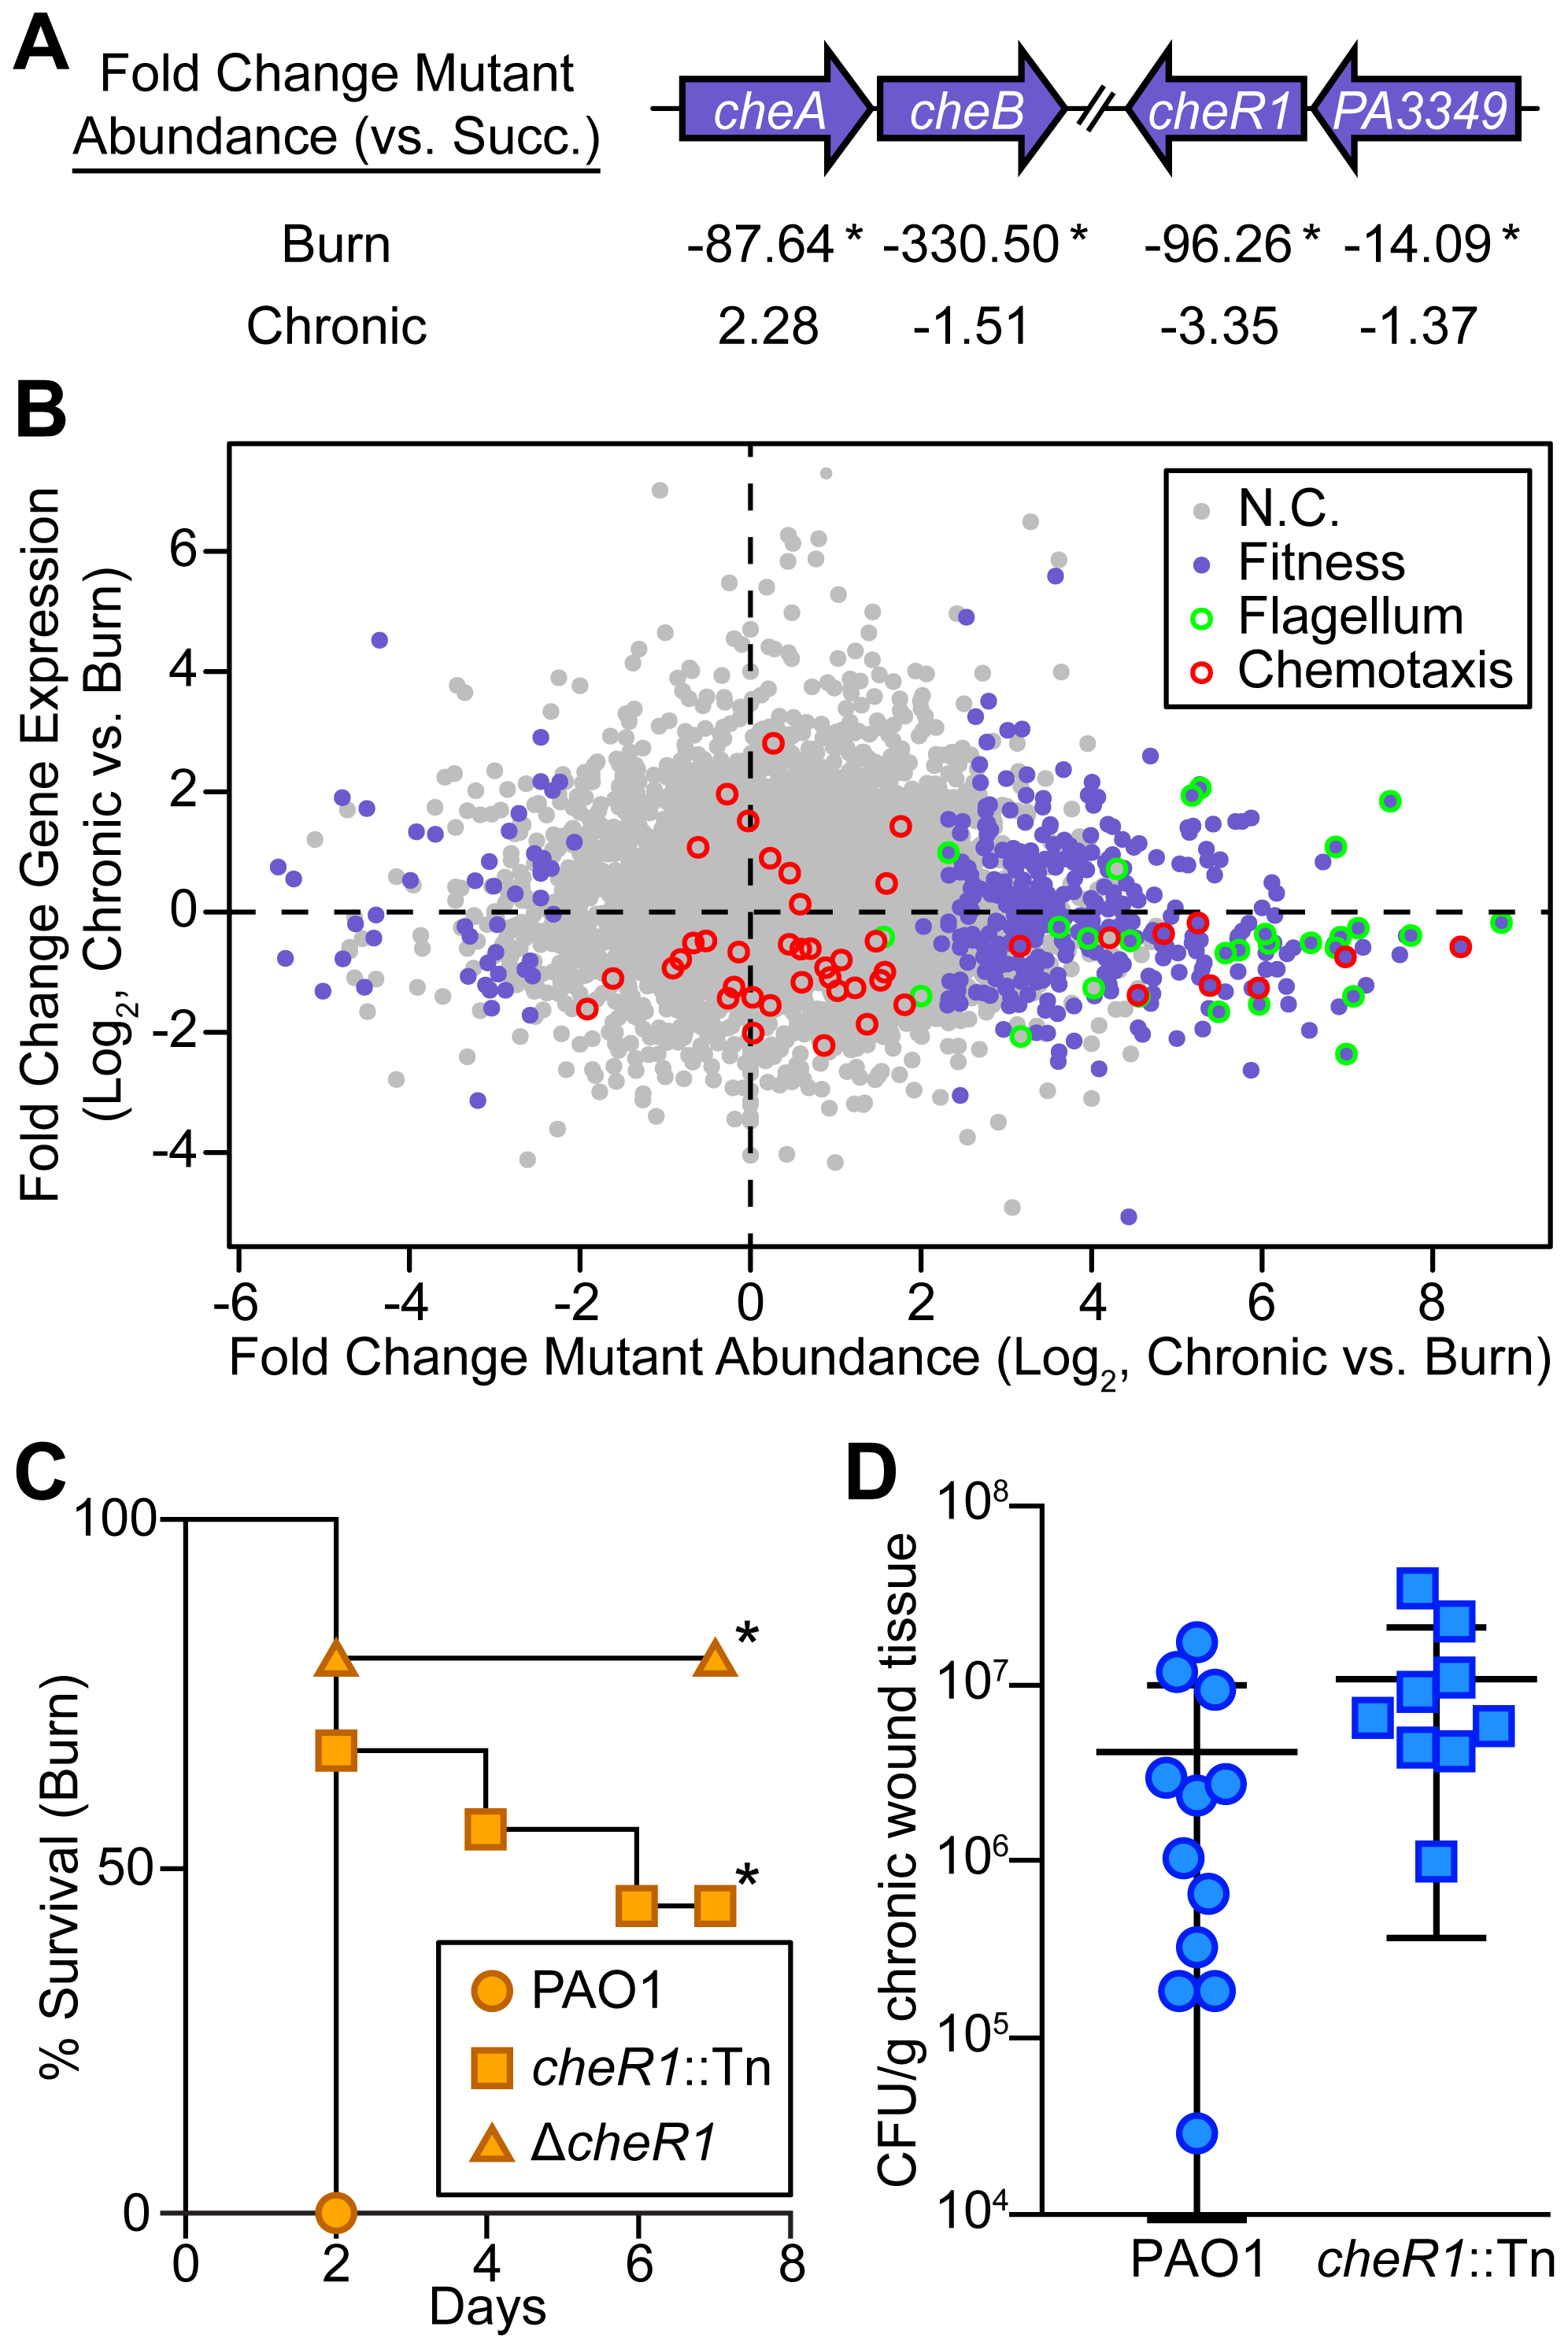 Chemotactic flagellar motility is required in burn wounds and not chronic wounds.